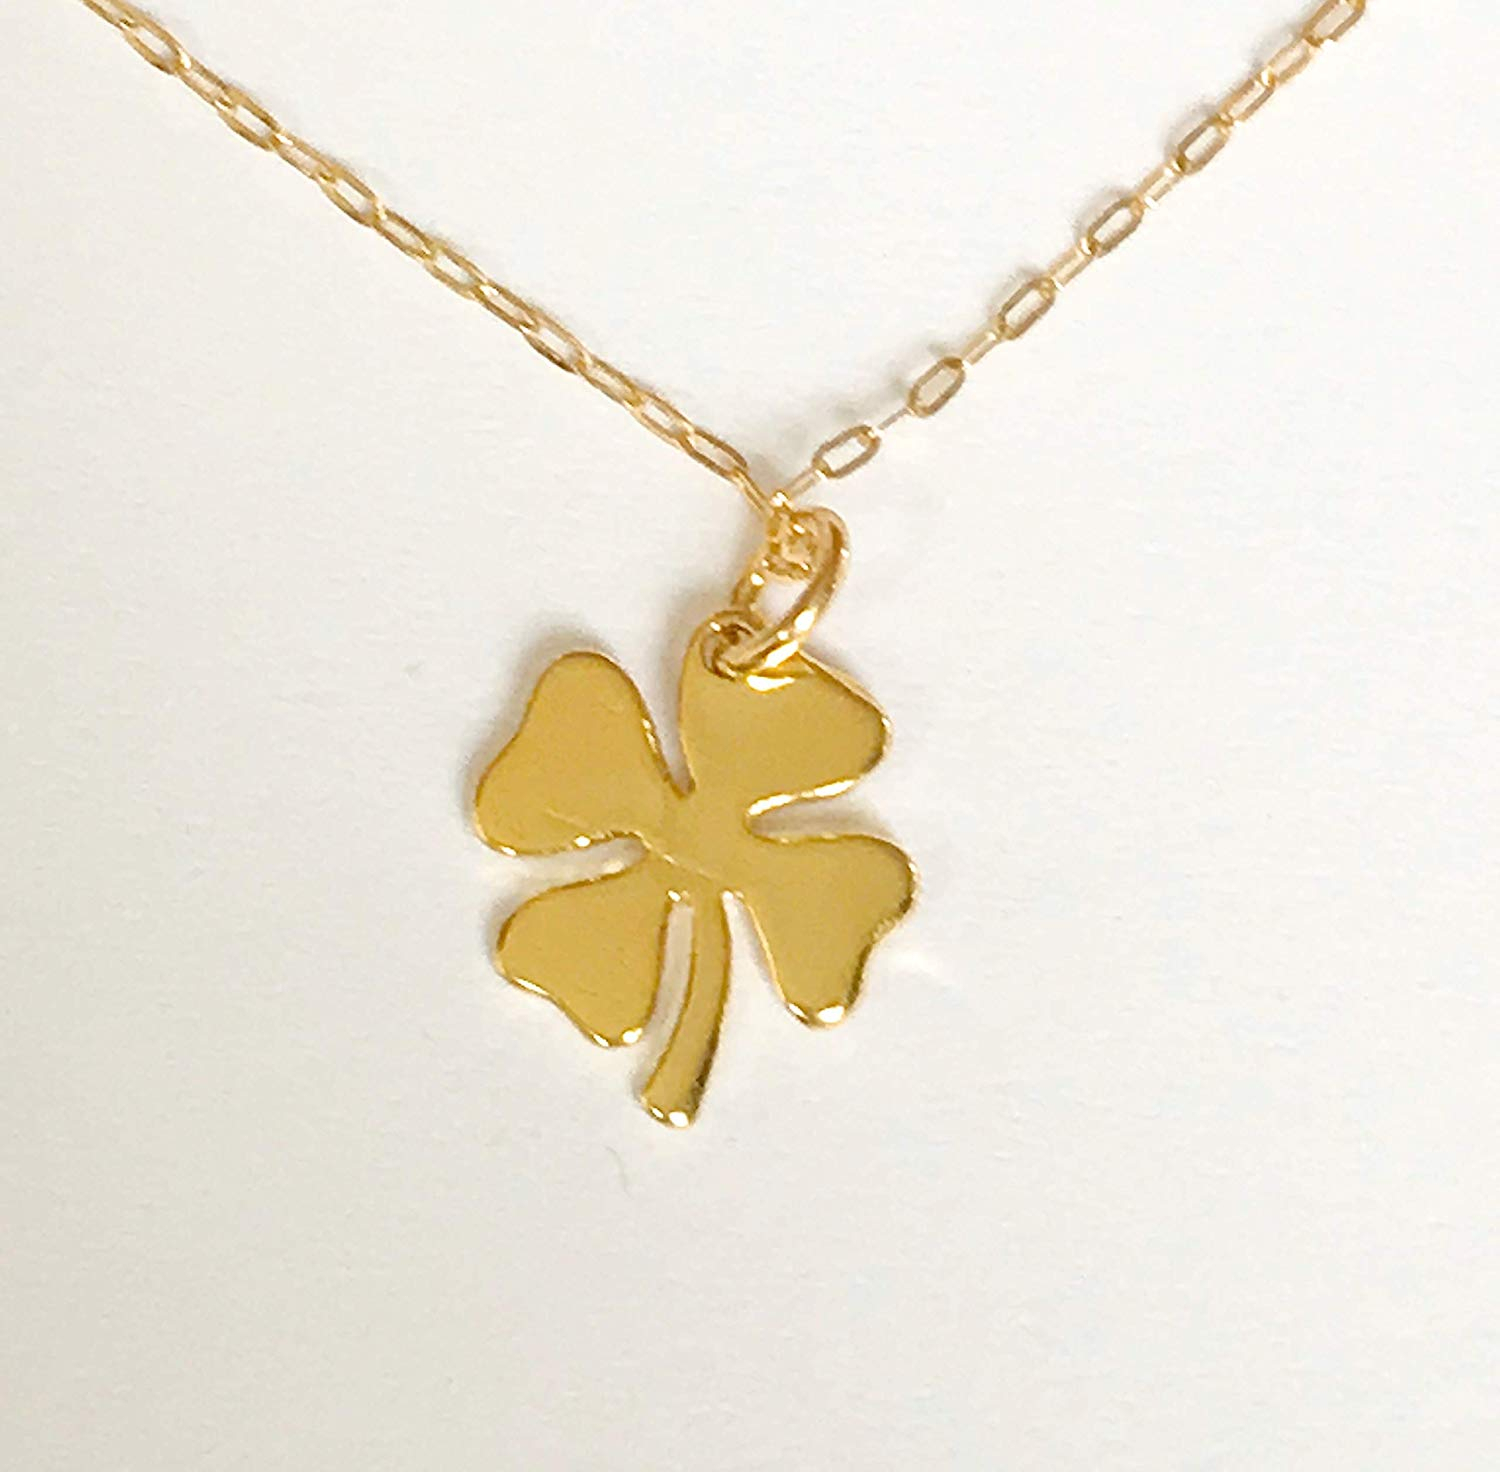 Cheap Gold 4 Leaf Clover, Find Gold 4 Leaf Clover Deals On Line At Pertaining To 2019 Lucky Four Leaf Clover Dangle Charm Necklaces (View 4 of 25)